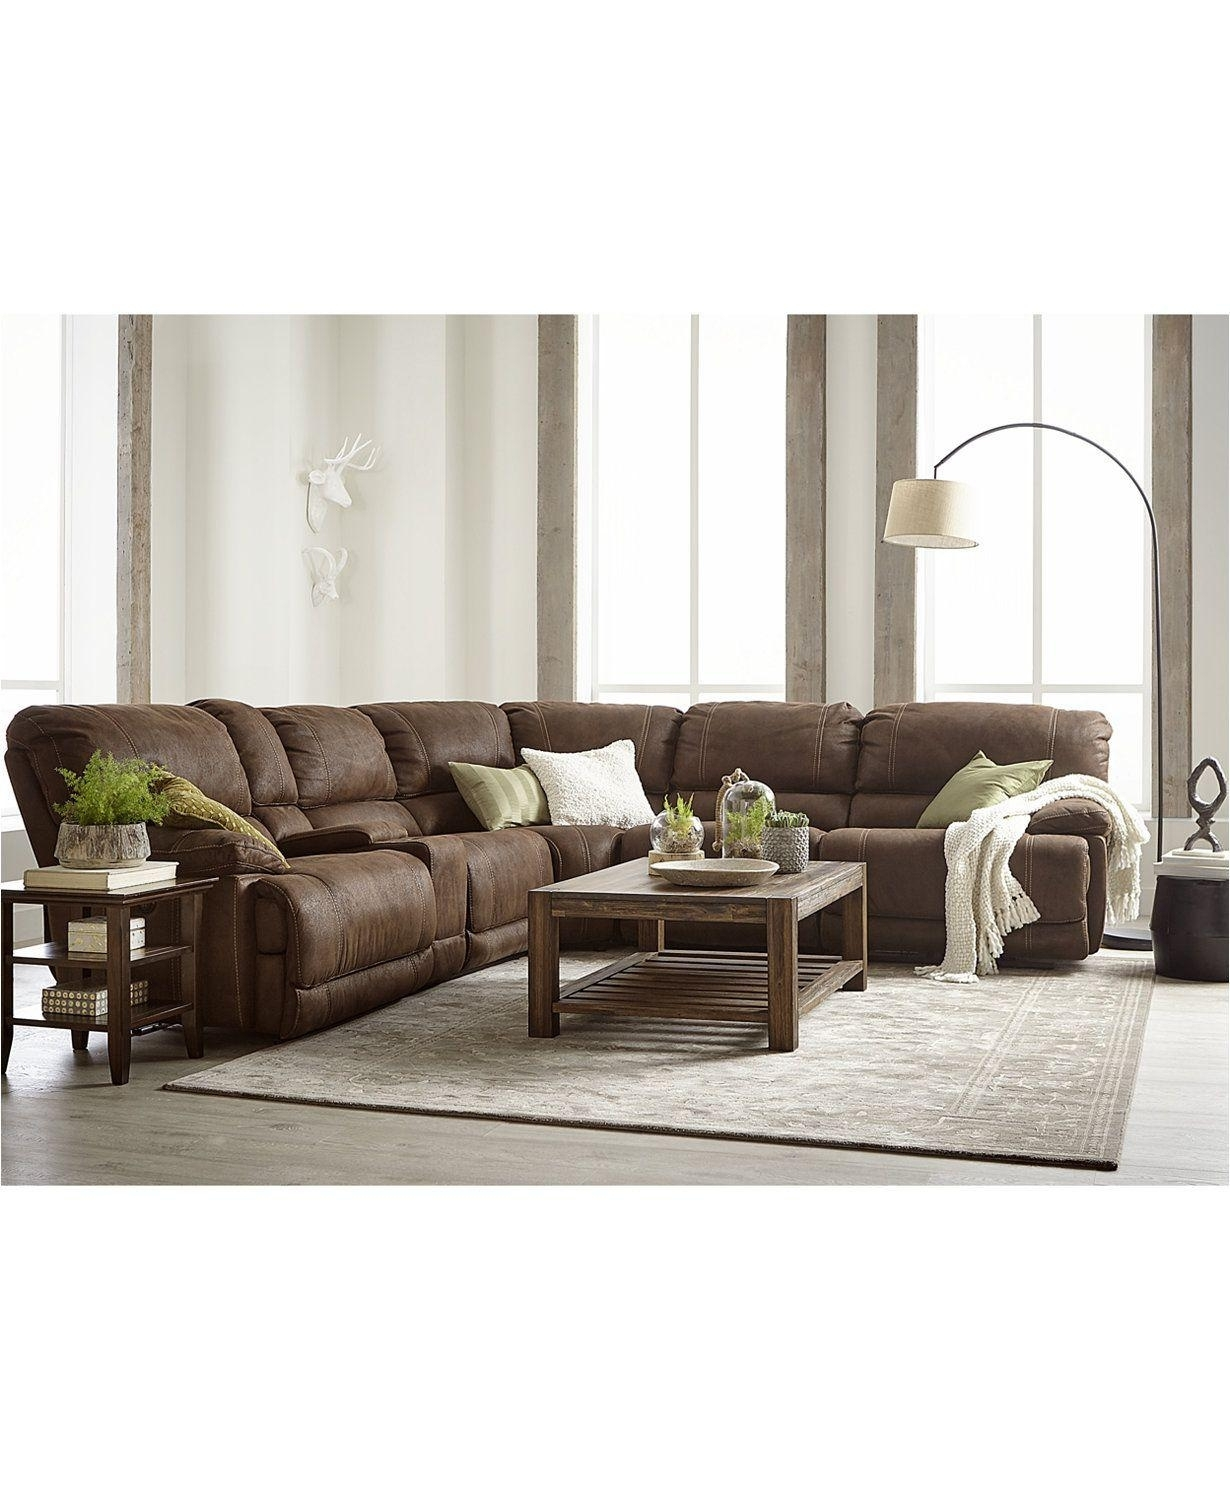 Fabric Sectional Sofa With Power Recliner   Baci Living Room For Declan 3 Piece Power Reclining Sectionals With Right Facing Console Loveseat (View 21 of 25)